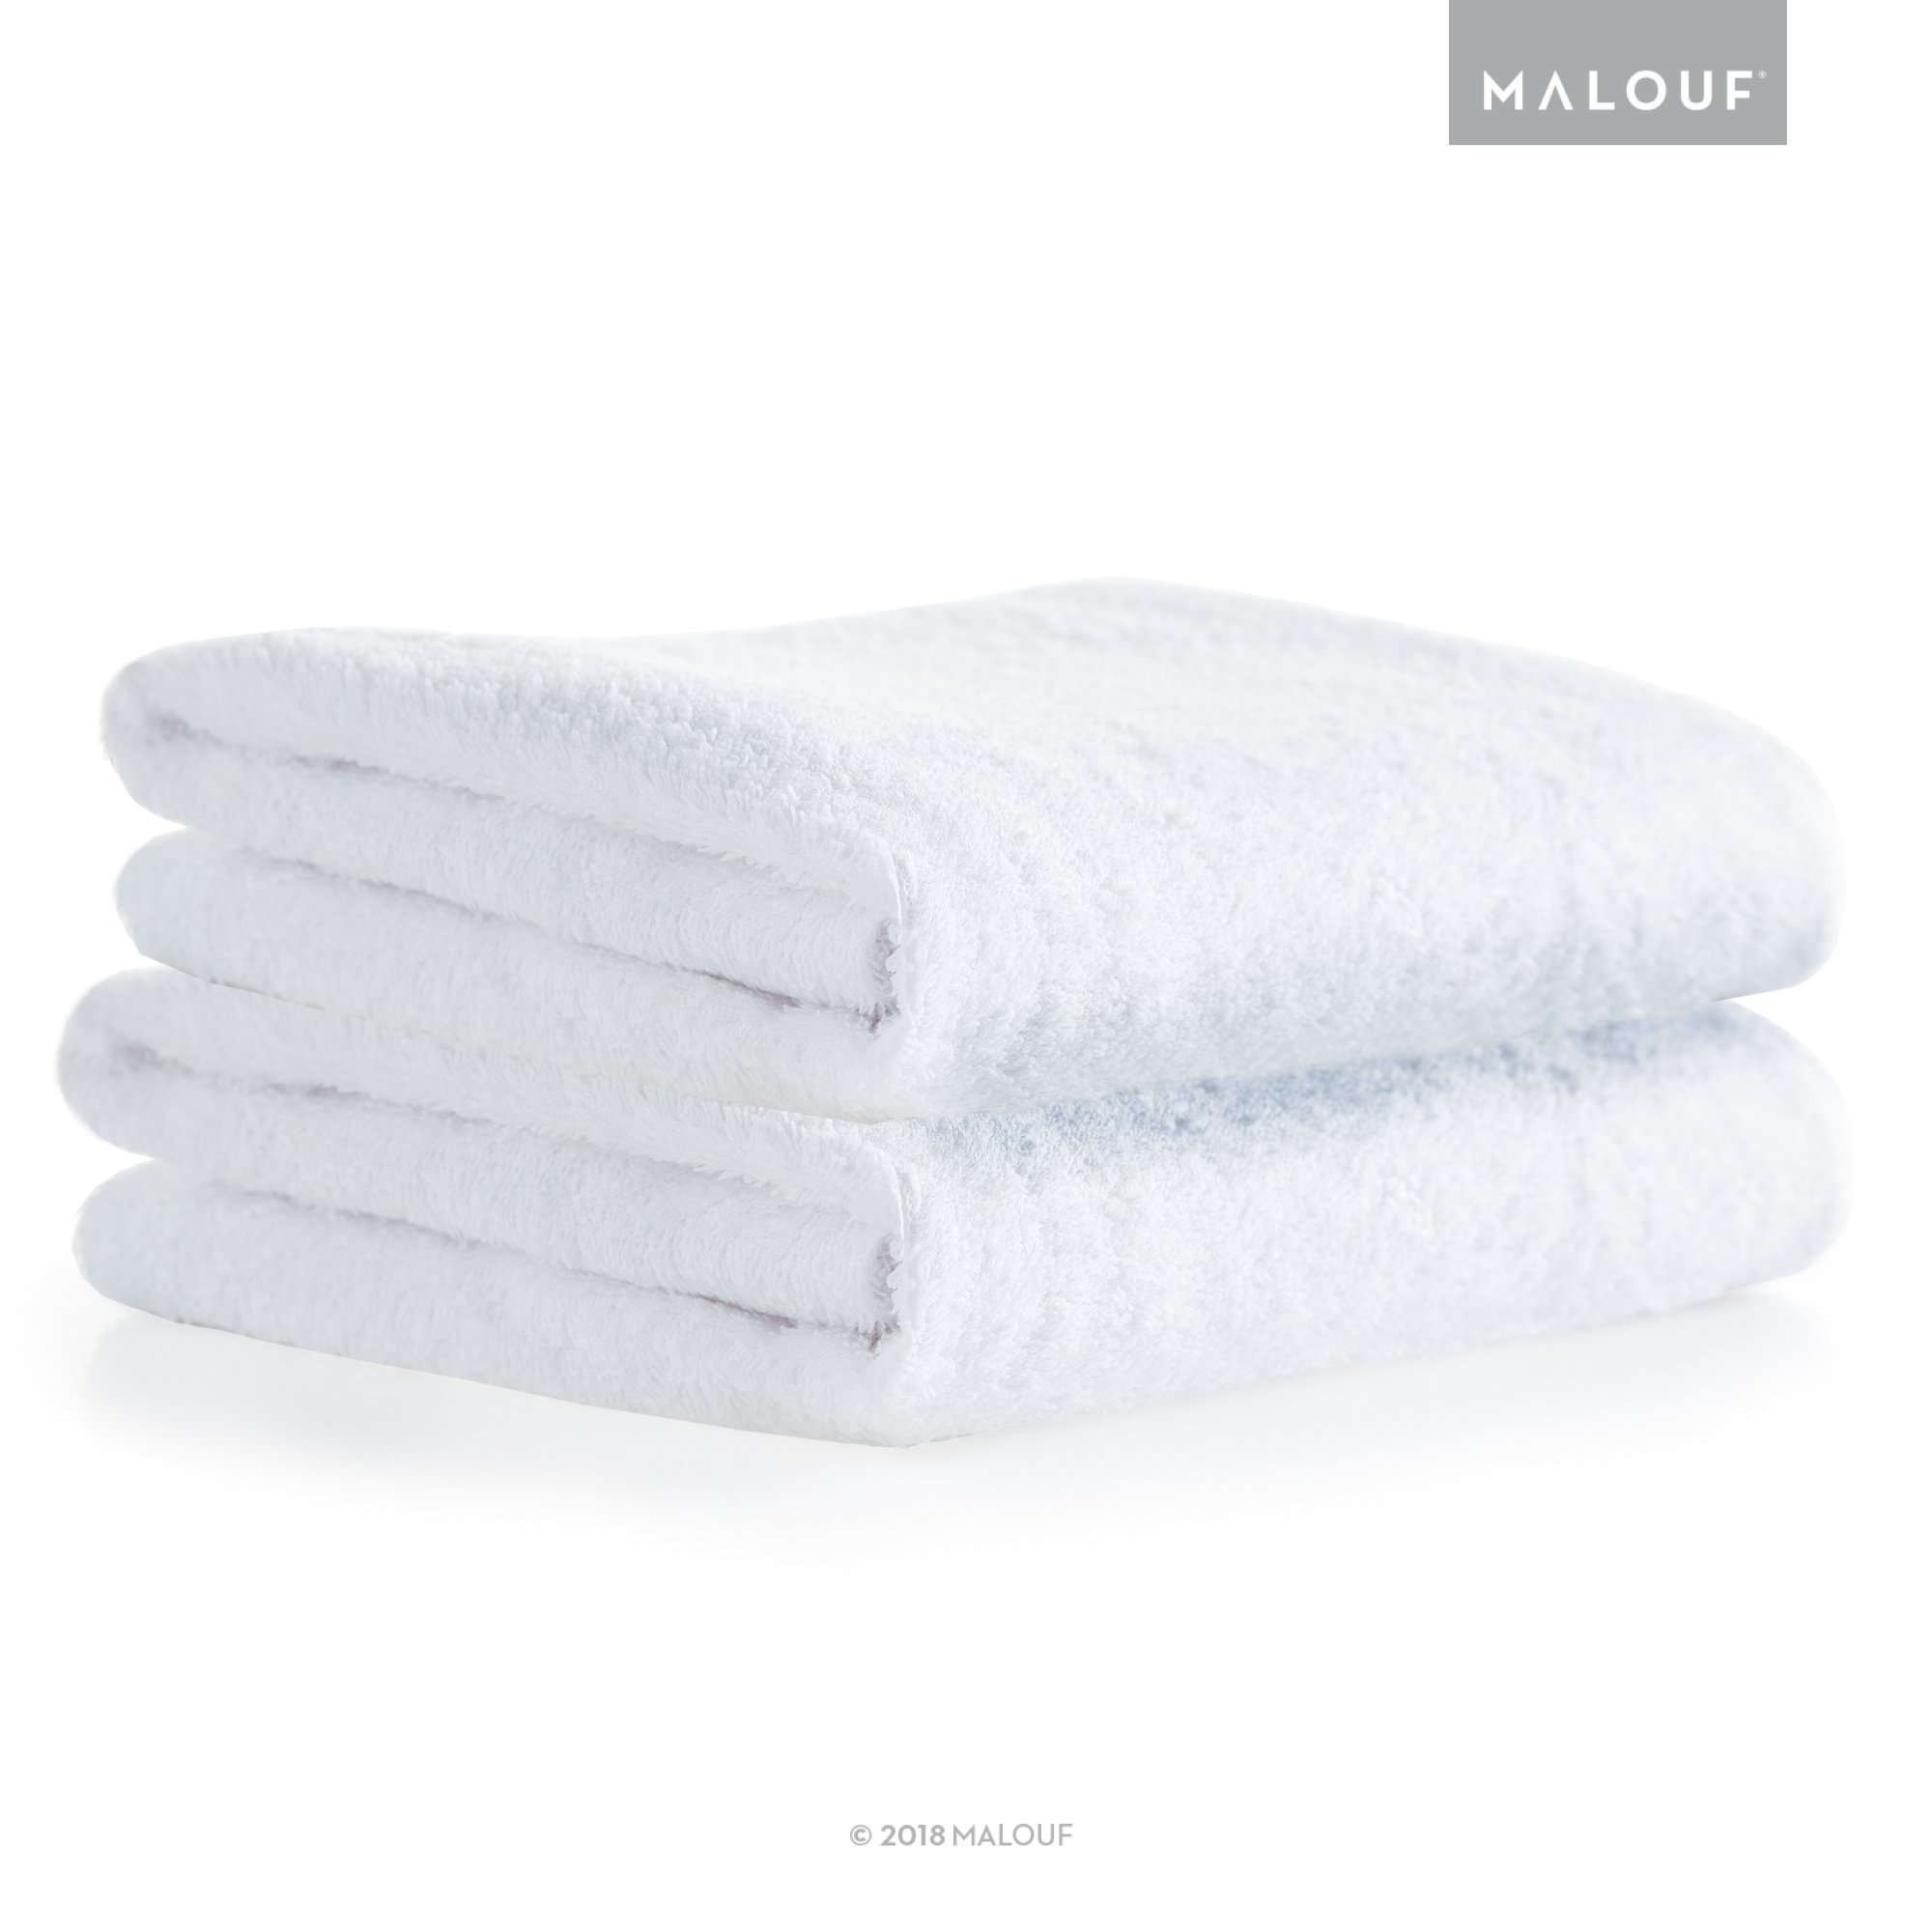 Sleep Tite Hypoallergenic 100% Waterproof Pillow Protector- 15-Year Warranty - Set of 2 - Standard by MALOUF (Image #4)